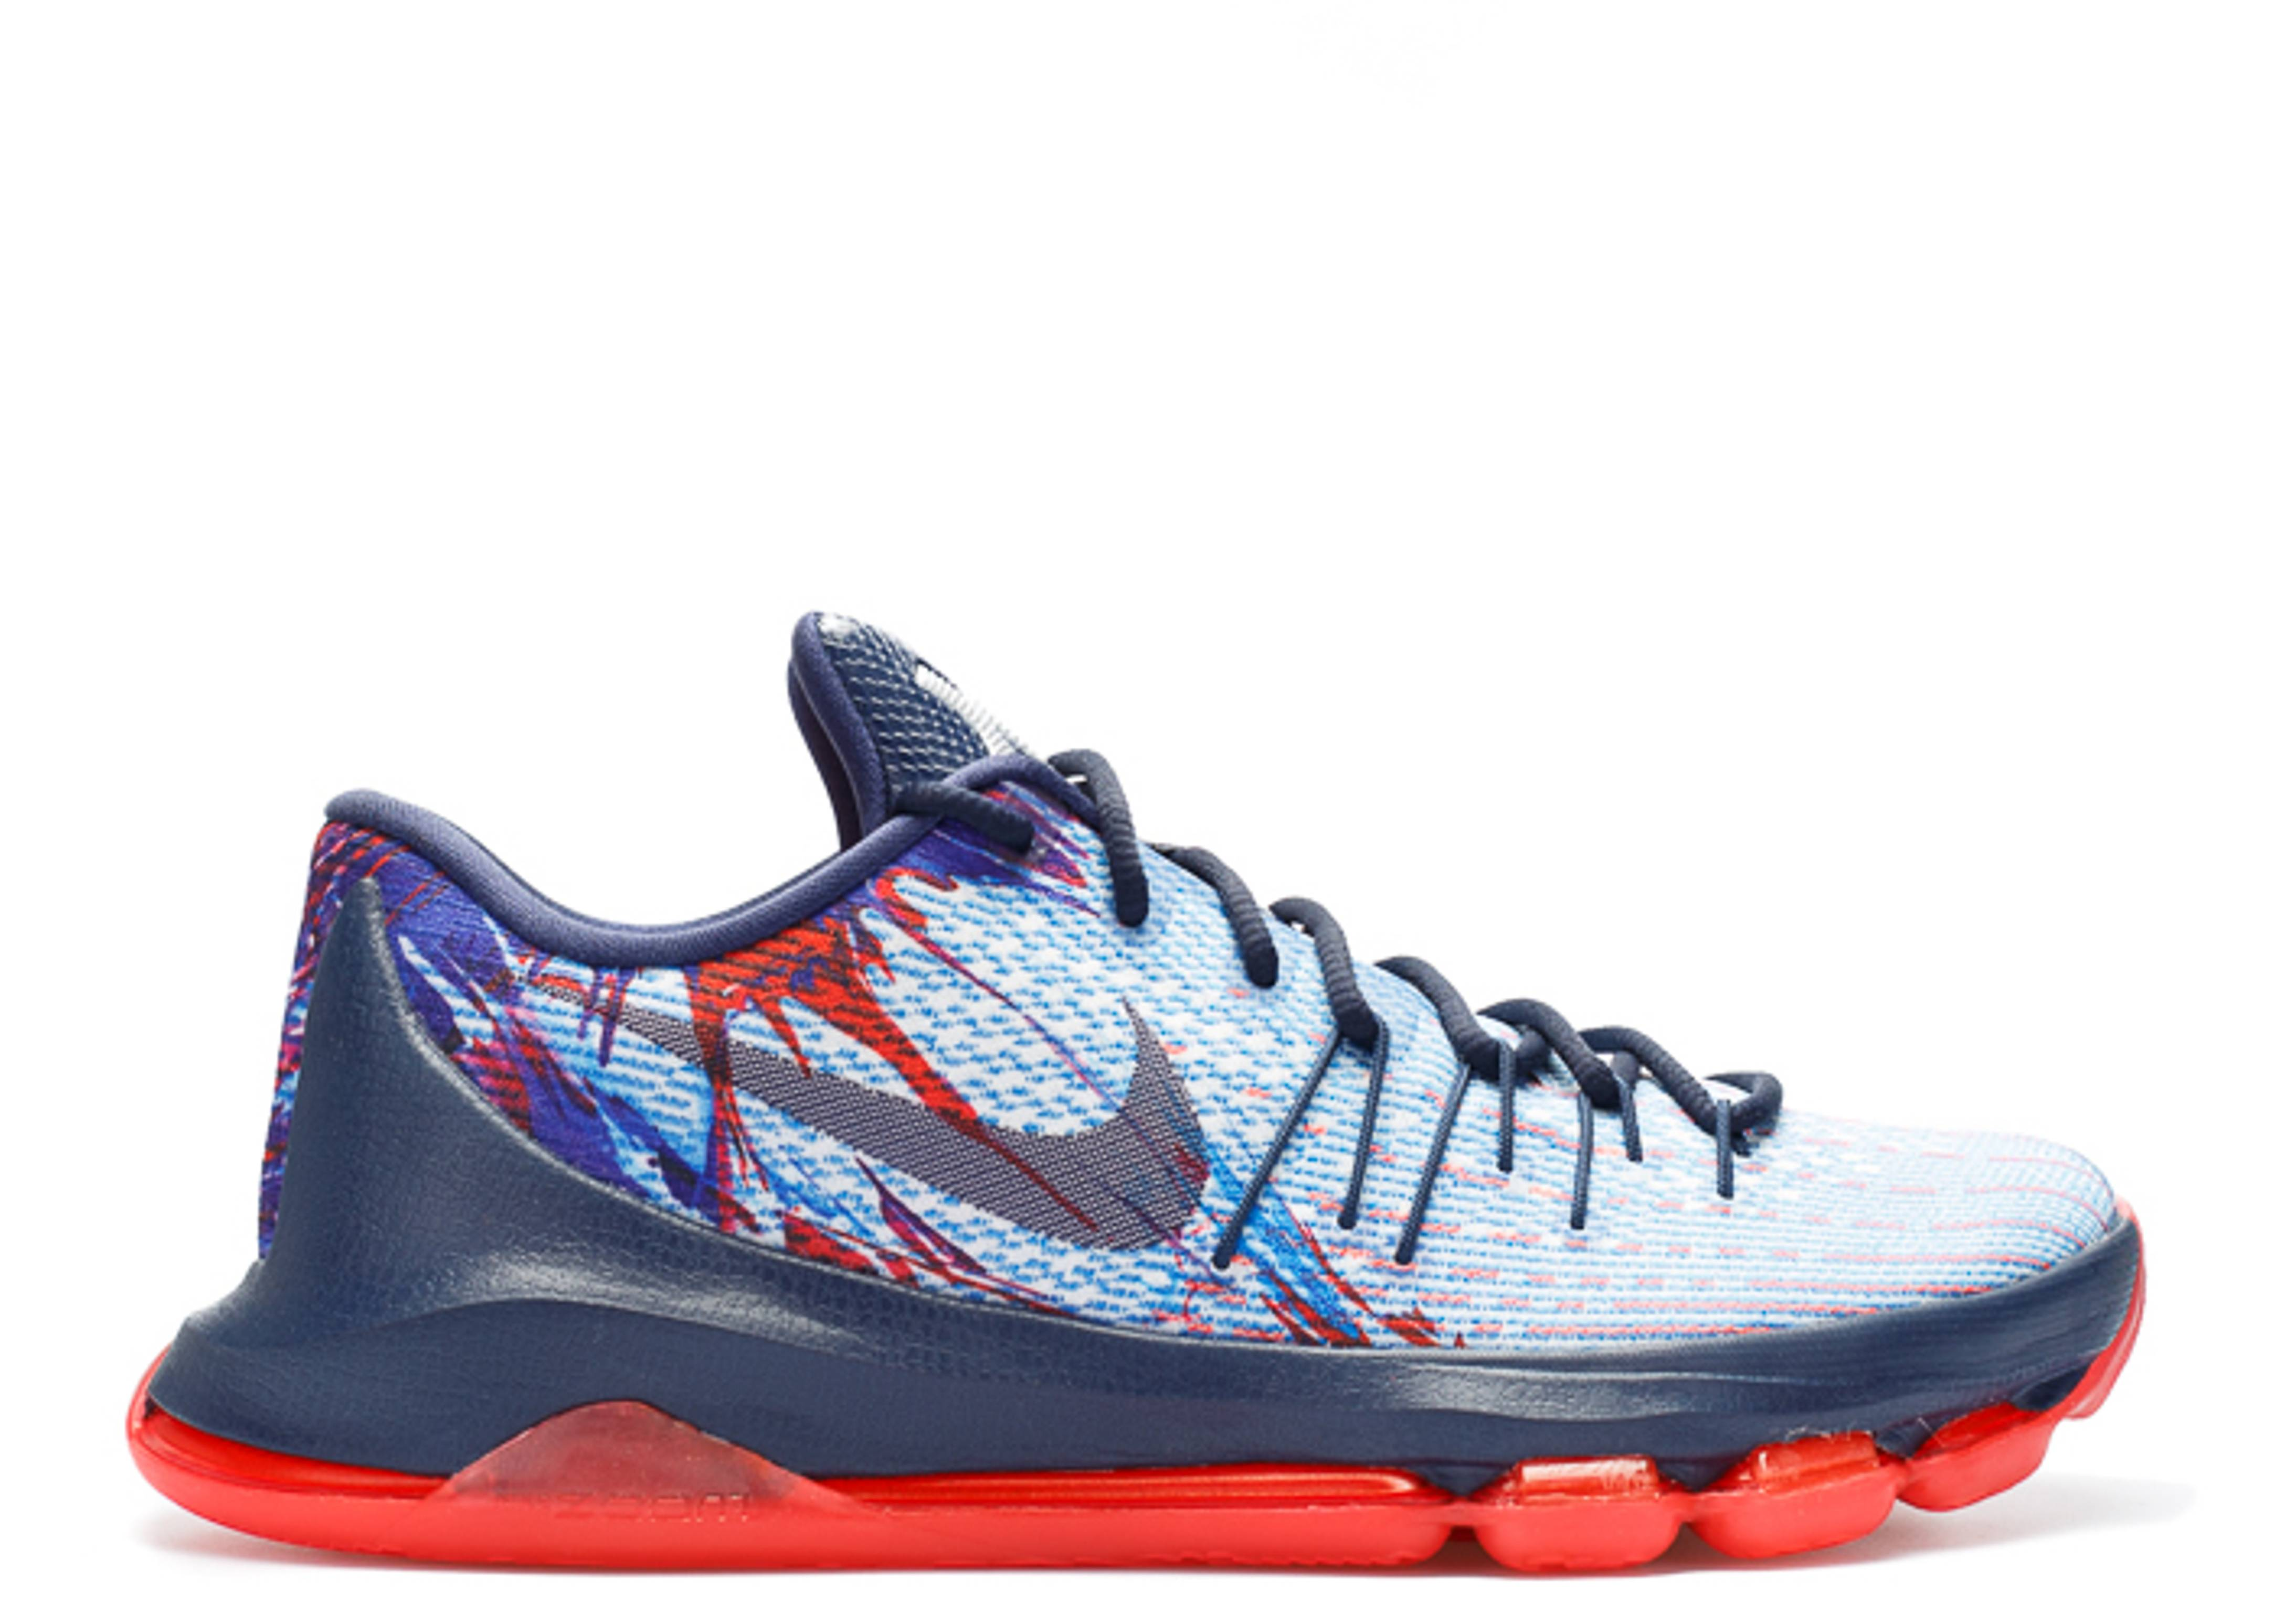 wholesale dealer 665d1 d5421 ... get kd 8 usa nike 749375 446 soar midnight navy bright crimson 76a1b  ff0d3